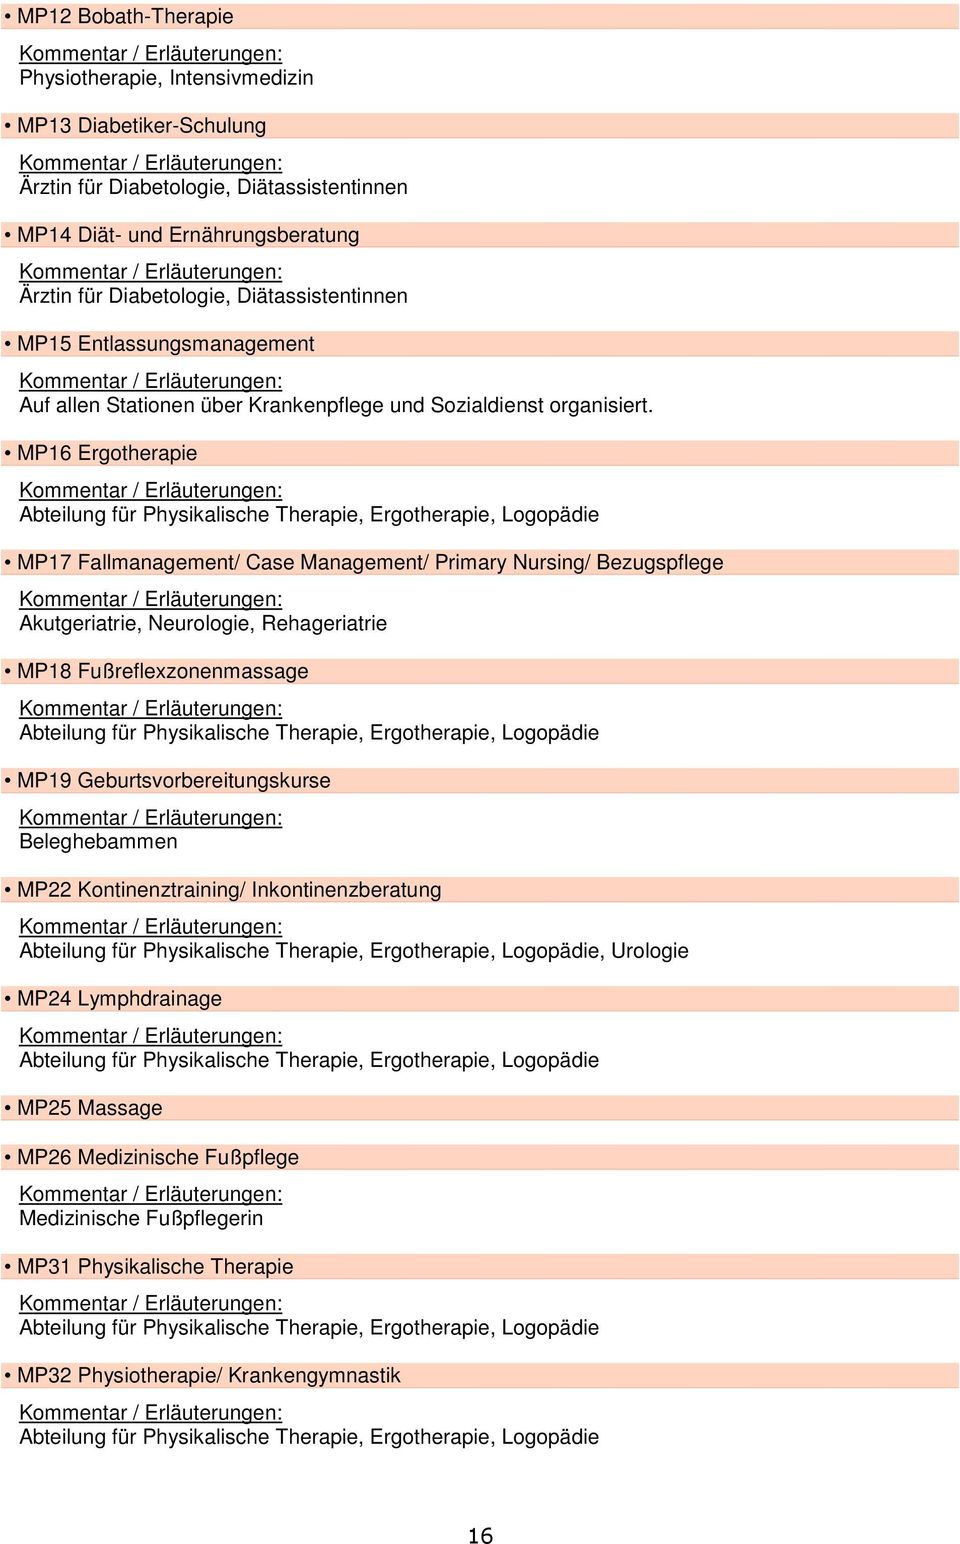 MP16 Ergotherapie Abteilung für Physikalische Therapie, Ergotherapie, Logopädie MP17 Fallmanagement/ Case Management/ Primary Nursing/ Bezugspflege Akutgeriatrie, Neurologie, Rehageriatrie MP18